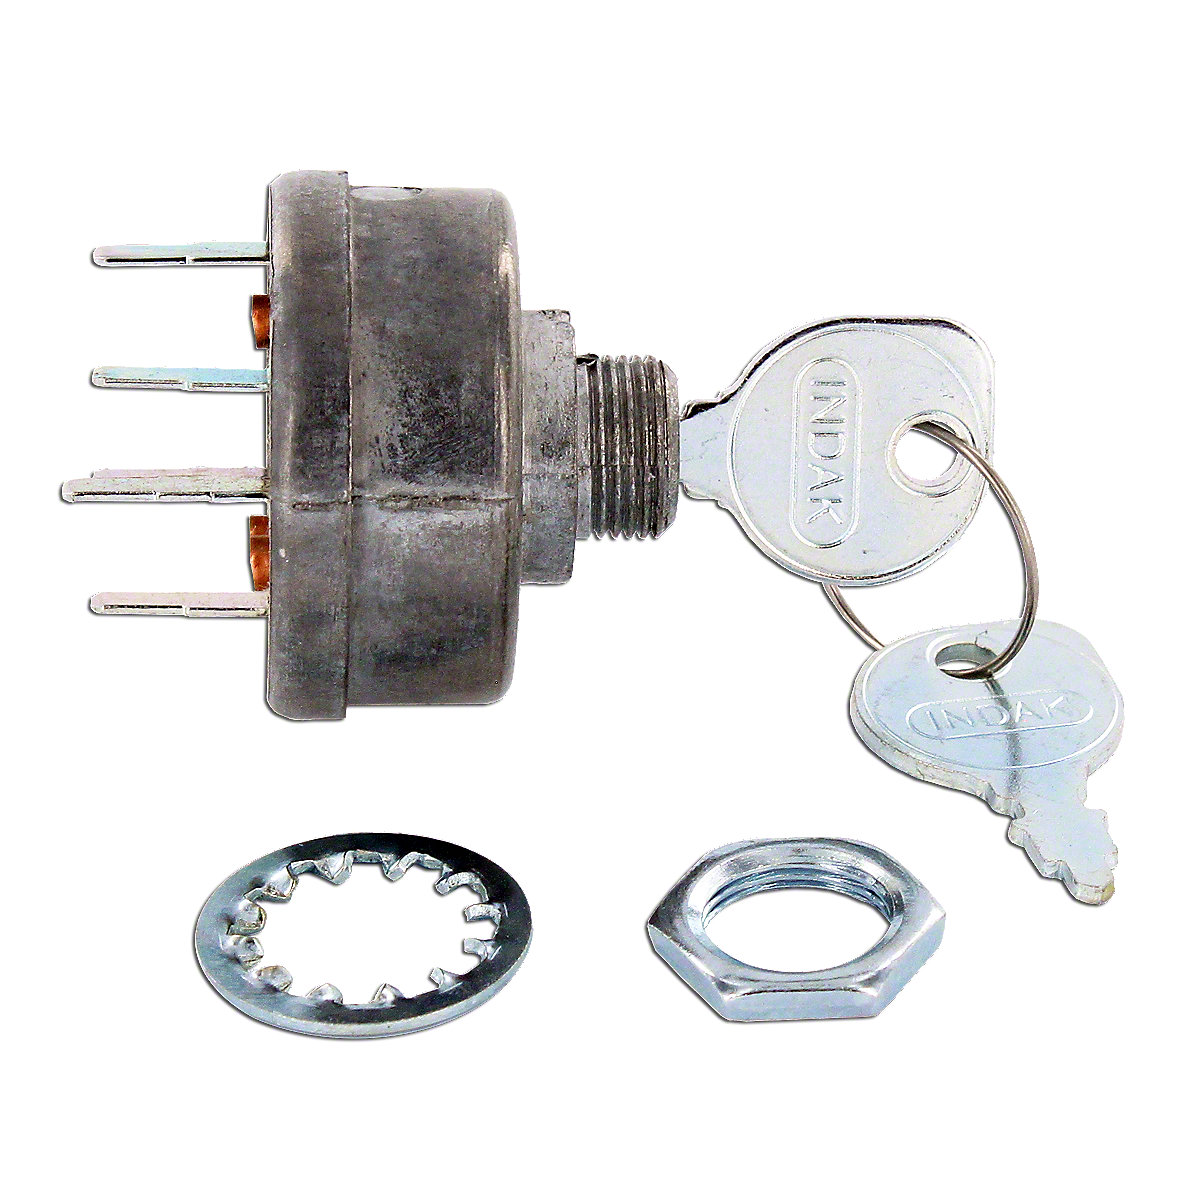 Ignition Switch With Keys For Allis Chalmers: 190XT, D10, D12, D15, D17.